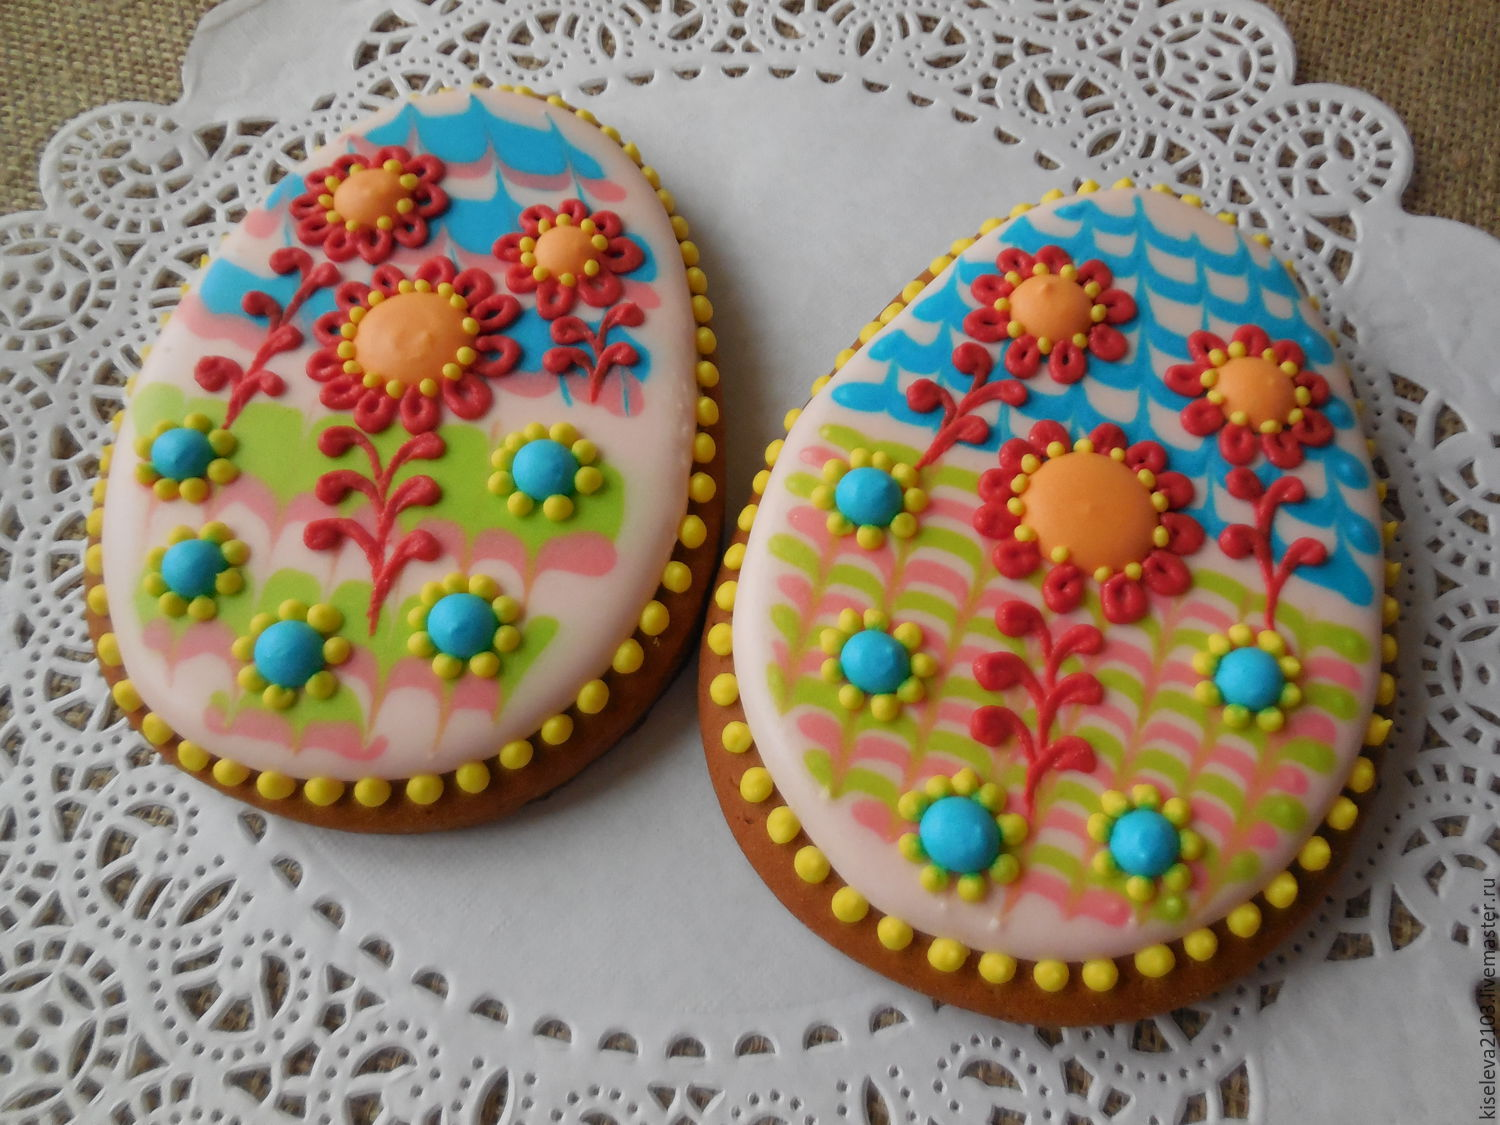 Gingerbread Cookies For Easter Gift For Easter Shop Online On Livemaster With Shipping 5y2rncom Dubna